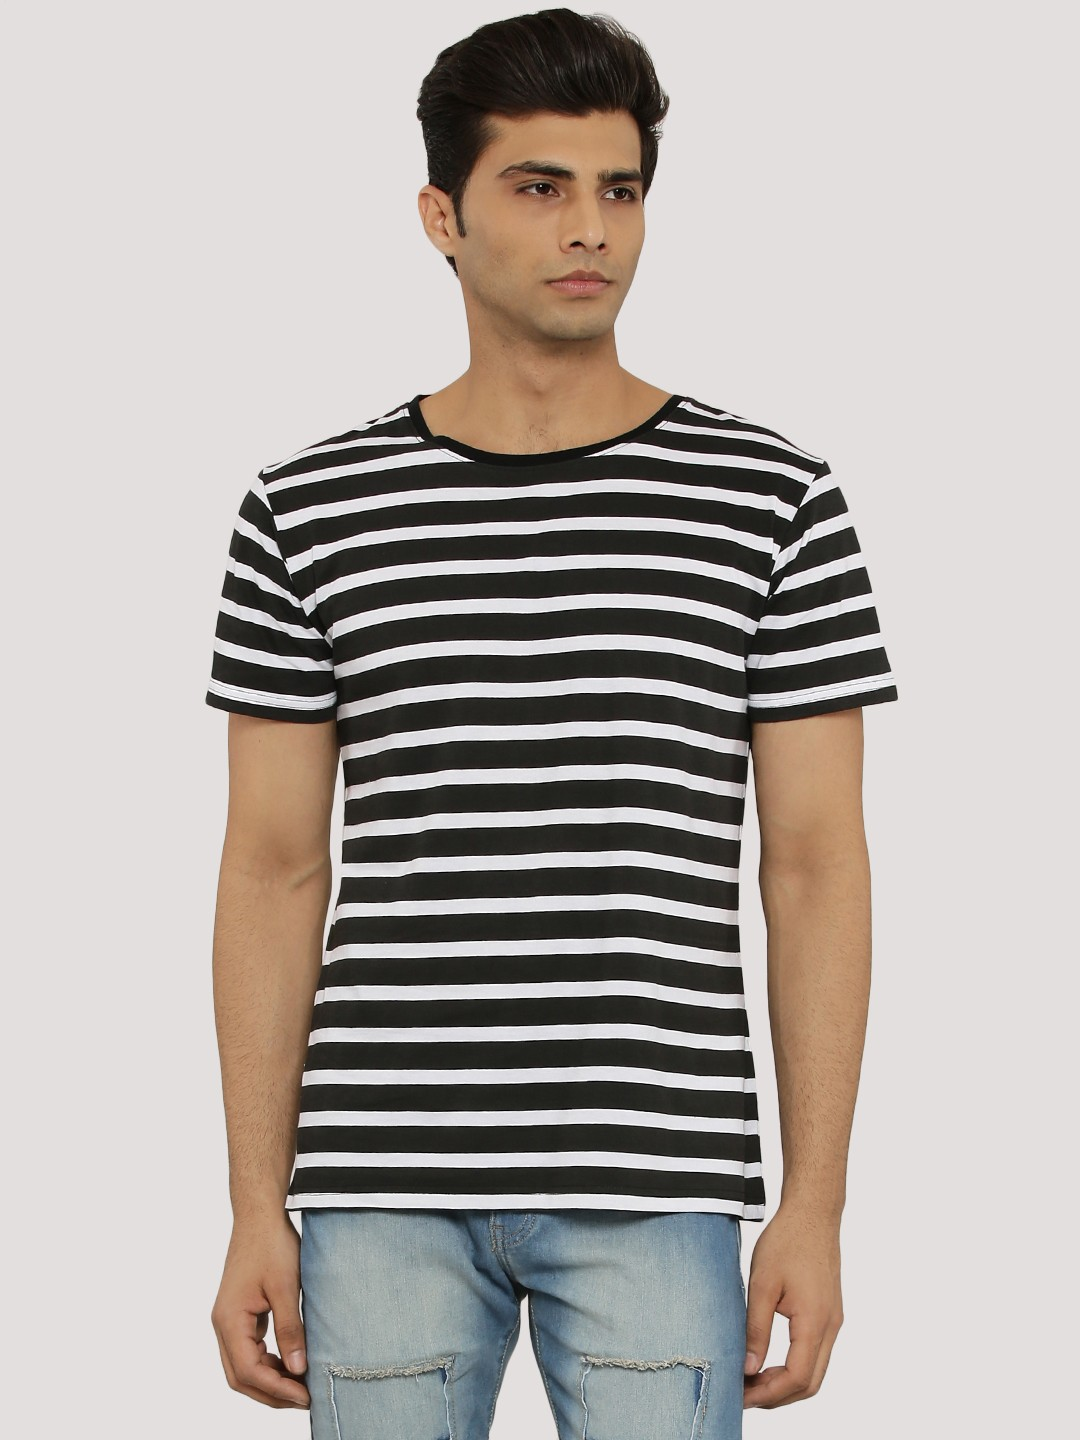 T shirts - Buy Mens T Shirts online at low prices in India. Huge range of new & latest t shirts designs available on Snapdeal online tshirts store. FREE Shipping CoD options on mens T Shirts T shirts Sale.